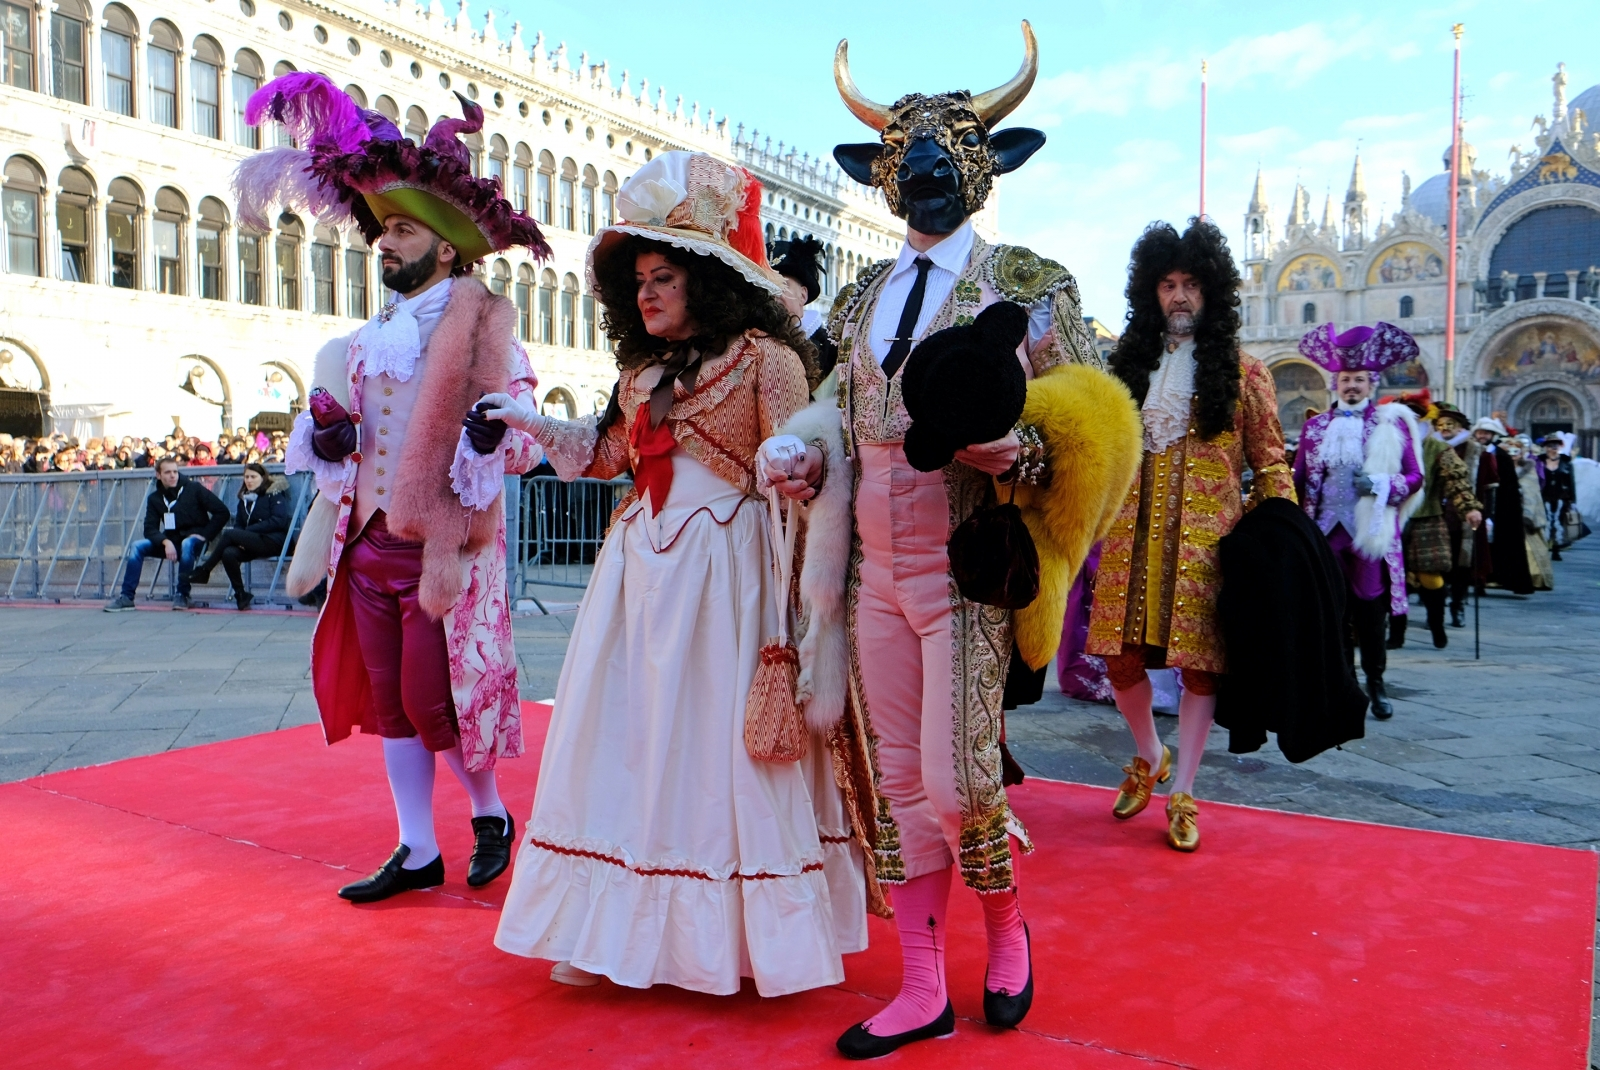 Awakening/Getty Images Venice Carnival 2018 best costumes  sc 1 st  IBTimes UK & Venice Carnival 2018 photos: Best costumes and masks at this yearu0027s ...